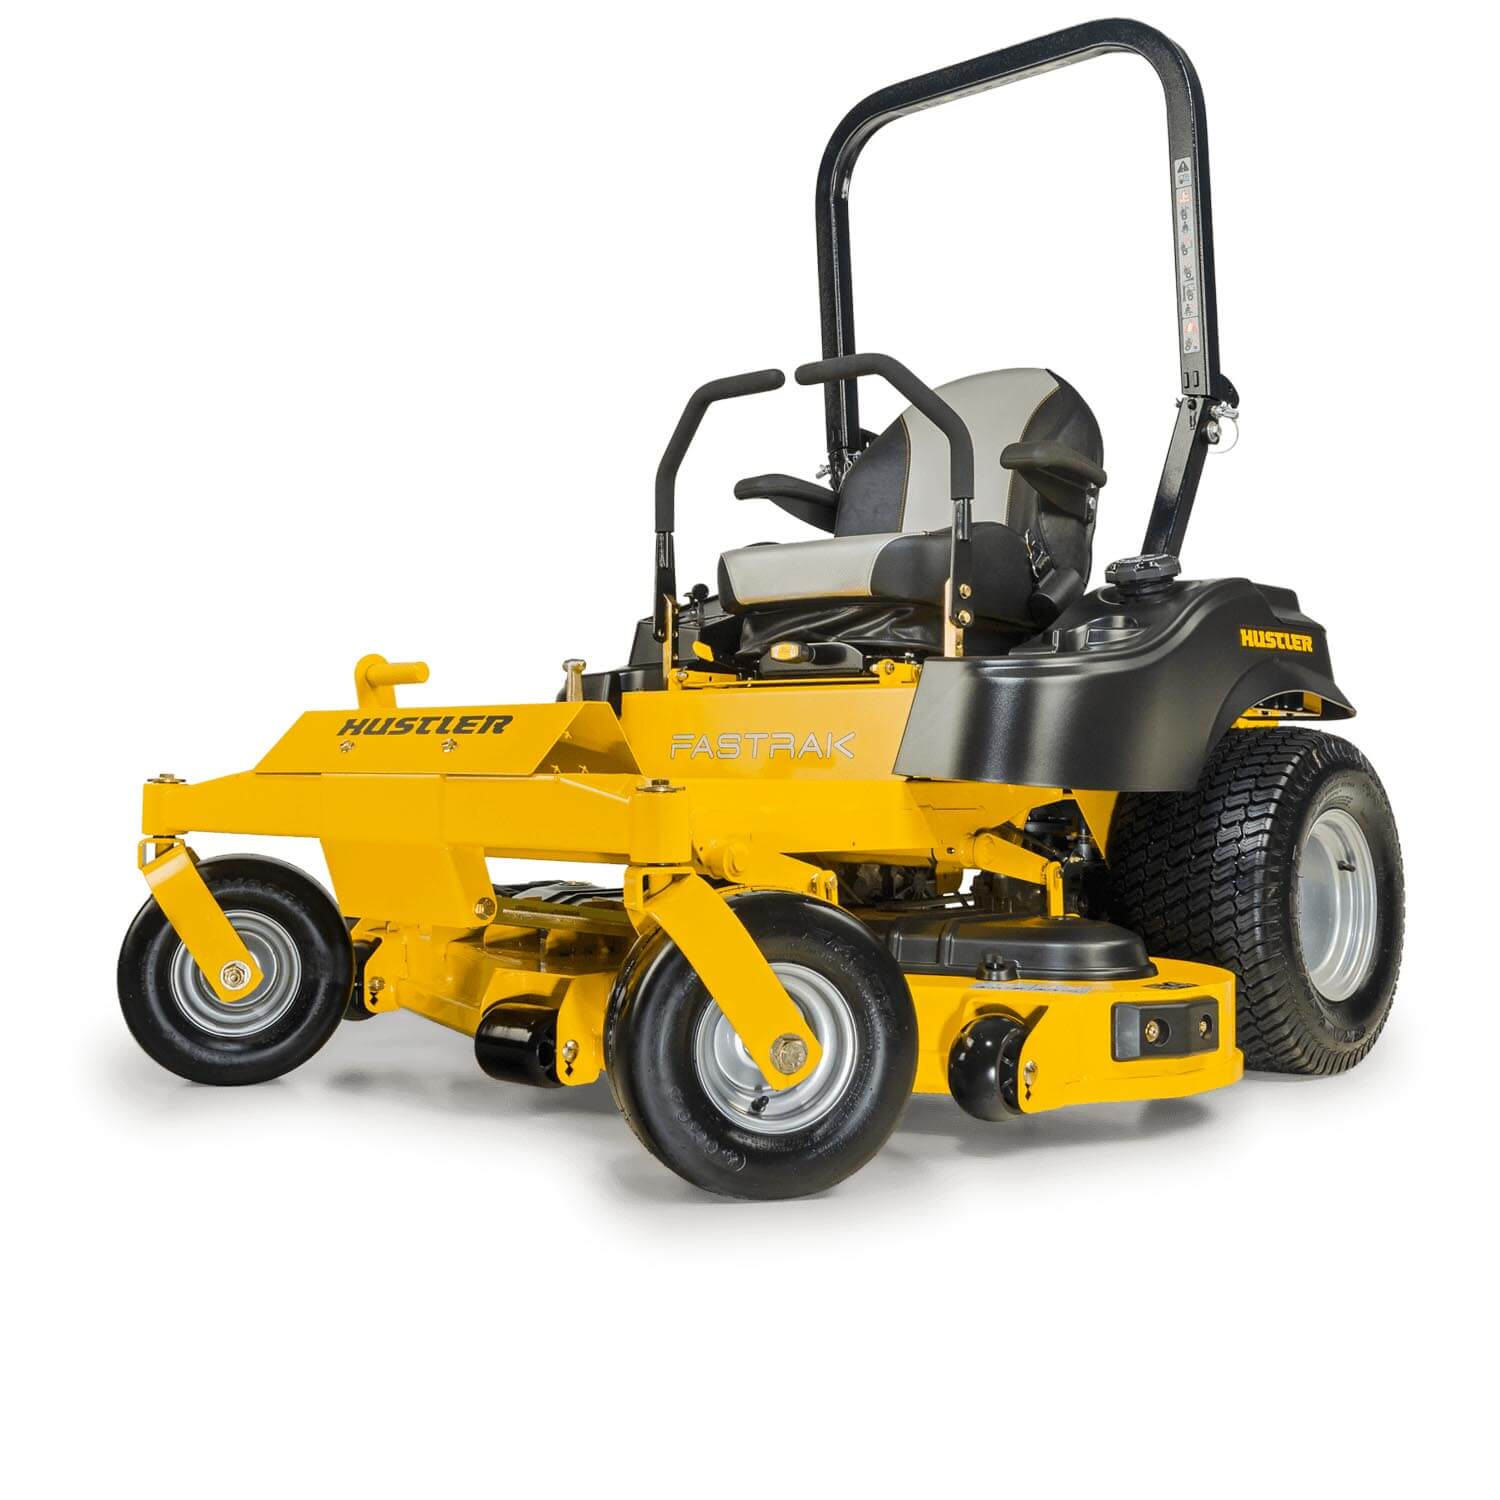 Image of front 3 quarters of a yellow mower showing the trim edge of the deck